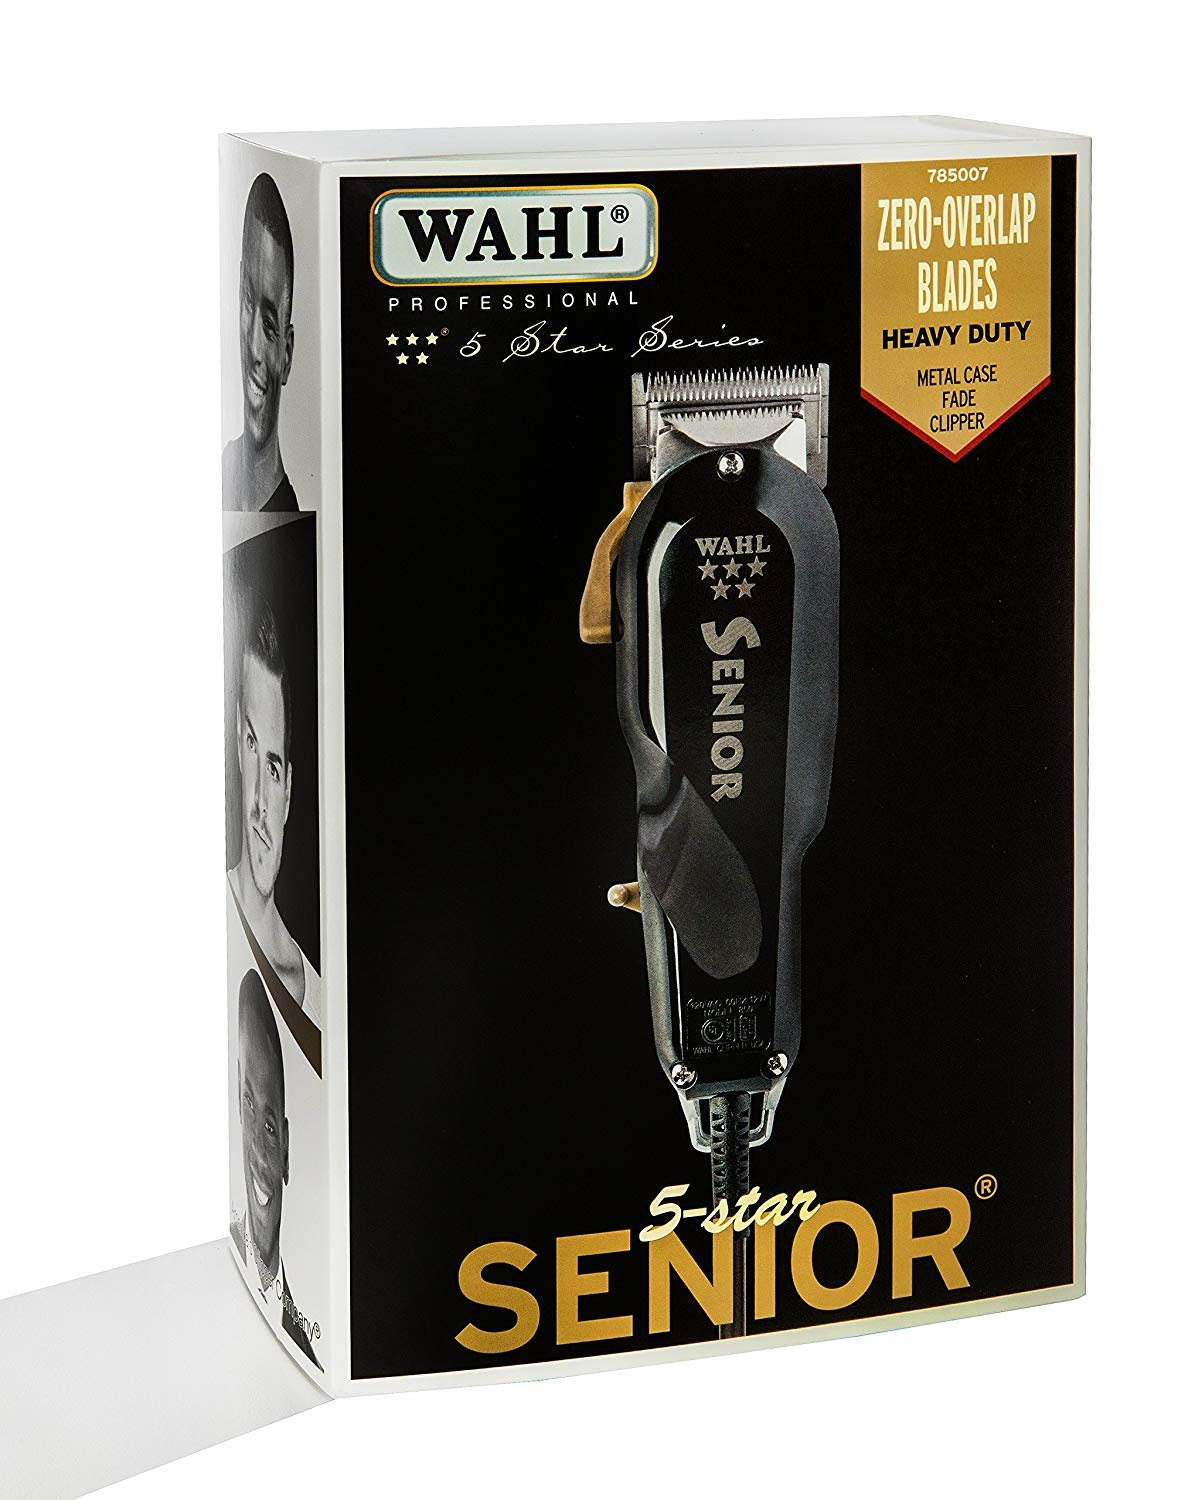 Wahl Professional 5-Star Series Senior Clipper #8545 - Great for Professional Stylists and Barbers - V9000 Electromagnetic Motor - Black --Aluminum metal bottom housing by Wahl Professional